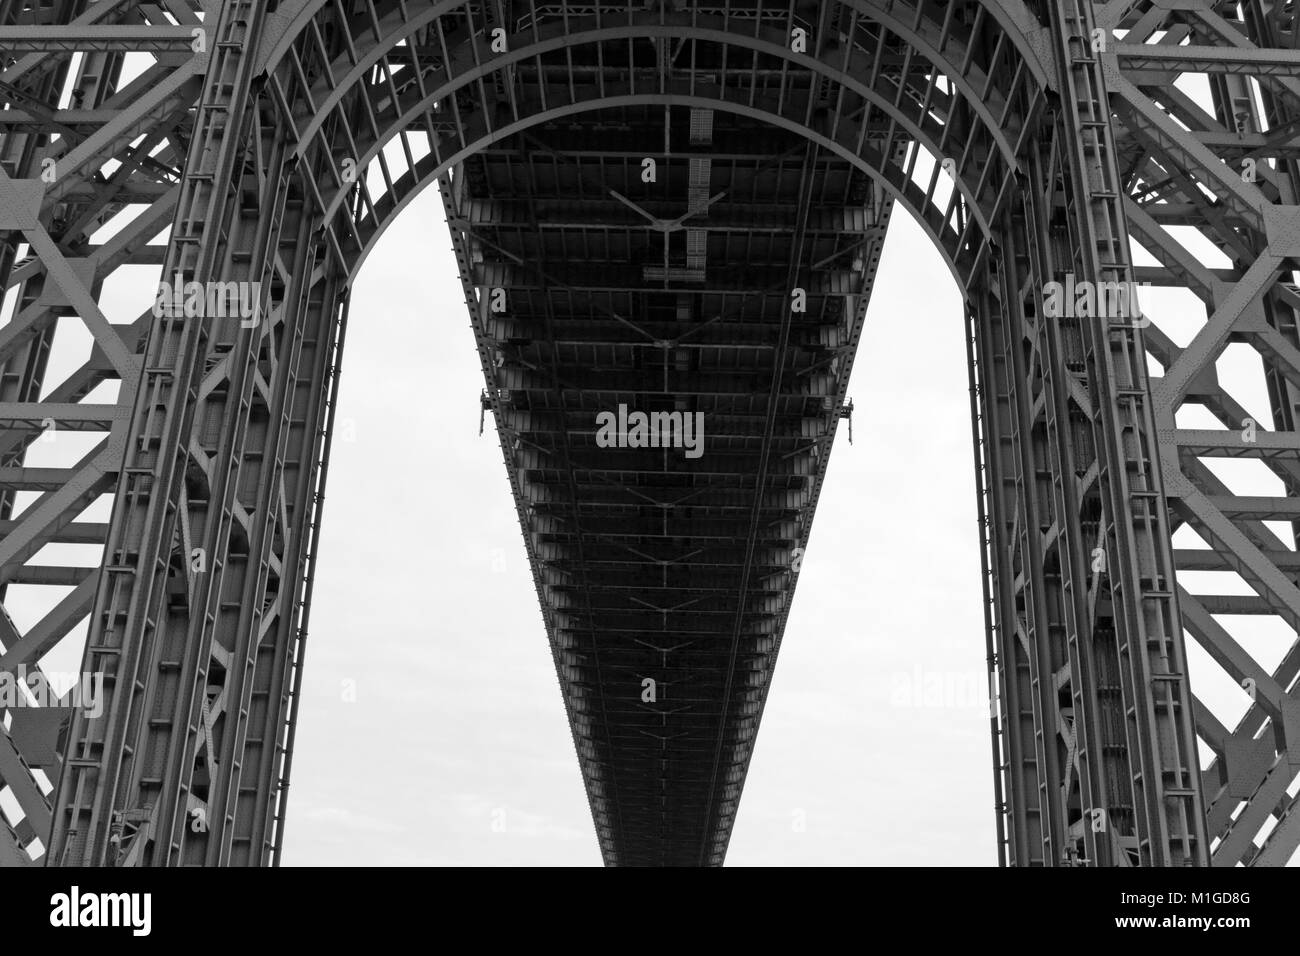 The George Washington Bridge as seen from below, Fort Lee, New Jersey,. - Stock Image